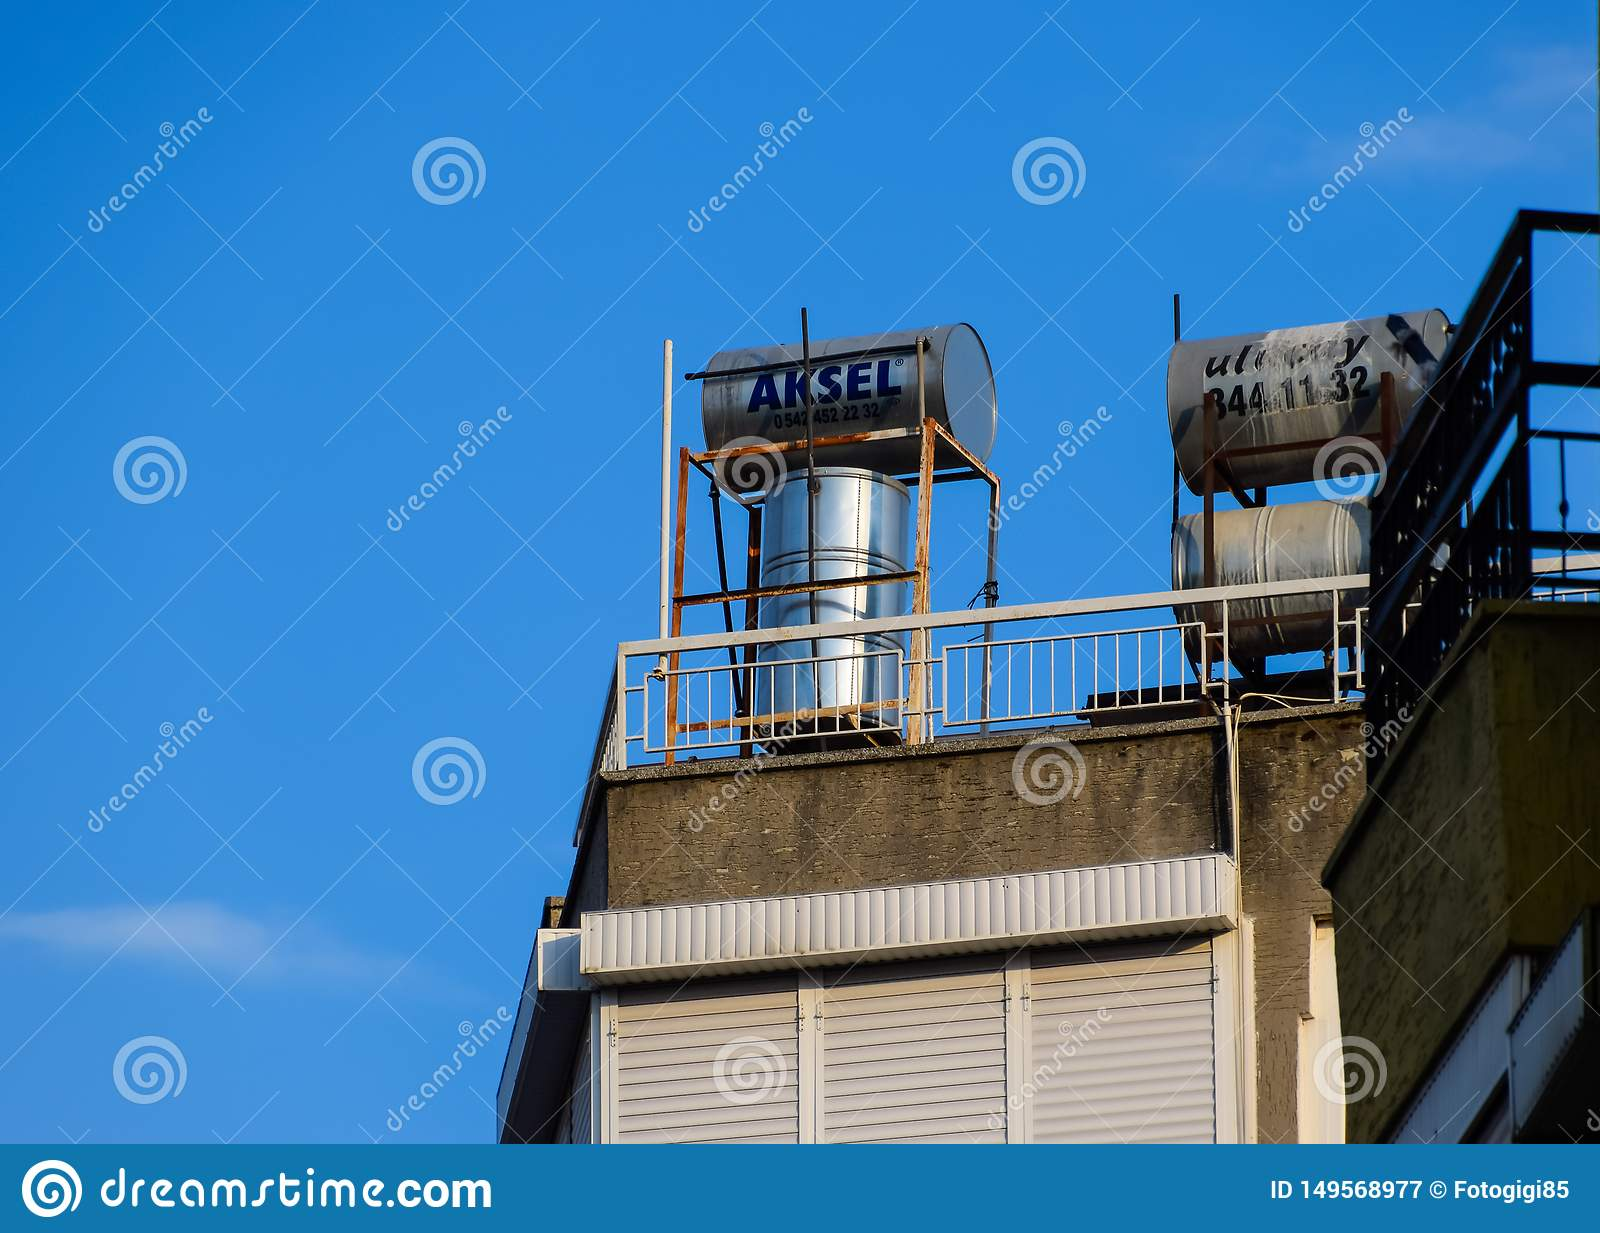 Steel barrels of boilers with water on the roof of a building to heat